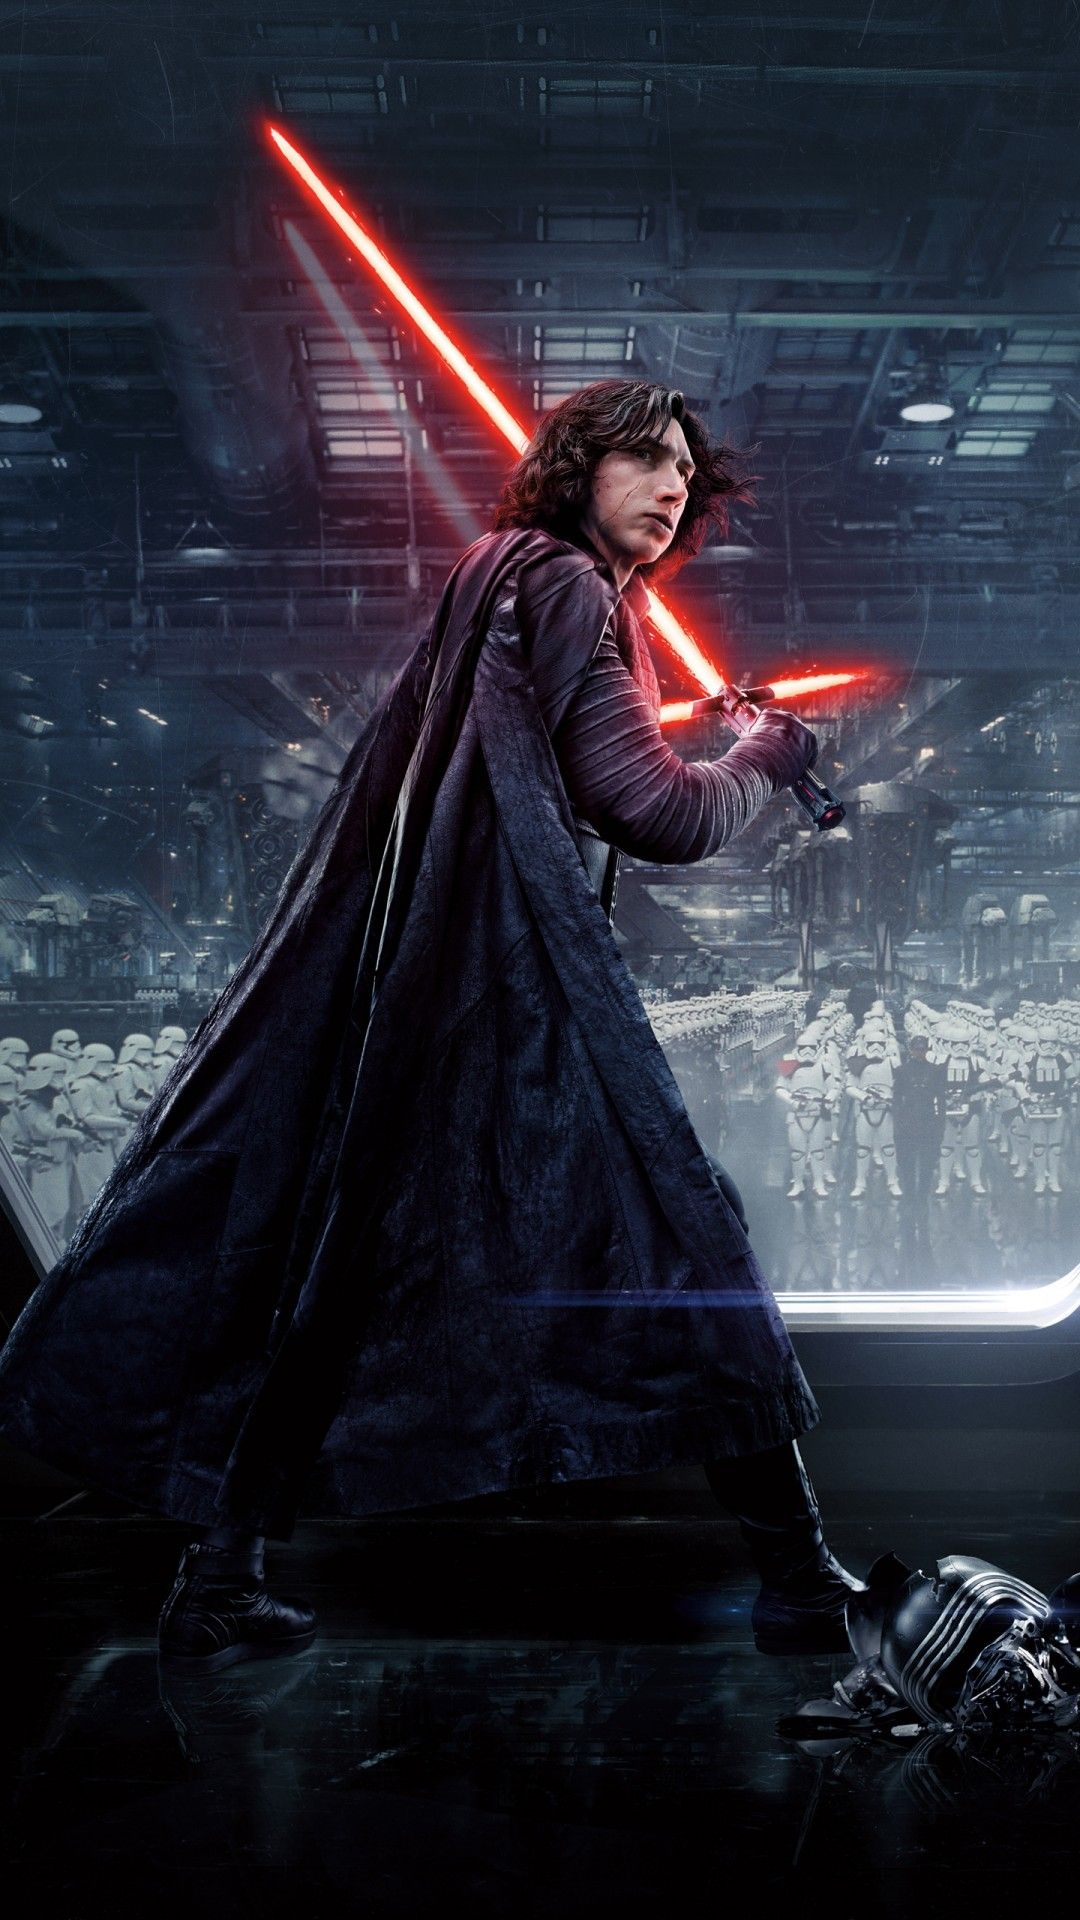 Adam Driver Kylo Ren Star Wars The Last Jedi Tap To See More Exciting Star Wars Wallpapers Mobile9 Star Wars Wallpaper Ren Star Wars Star Wars Kylo Ren